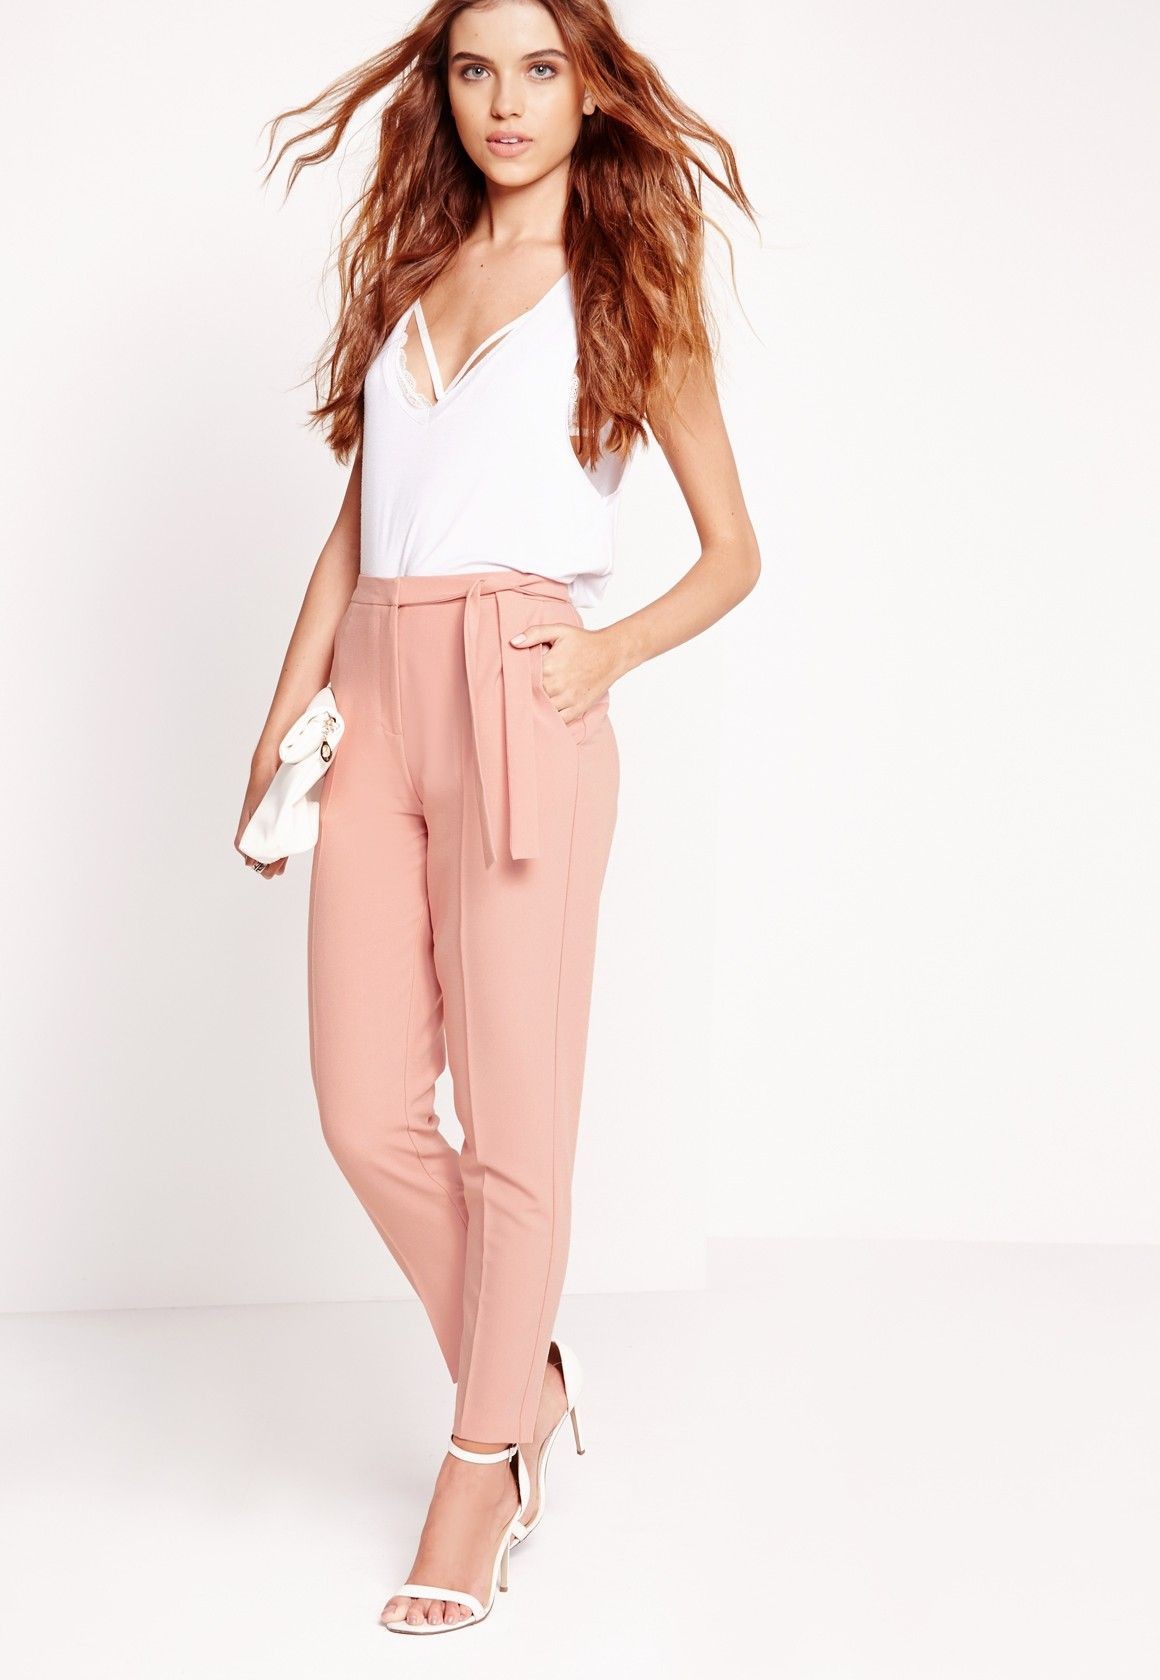 fc2253c2e369 Missguided - Tie Belt High Waist Cigarette Pants Pink